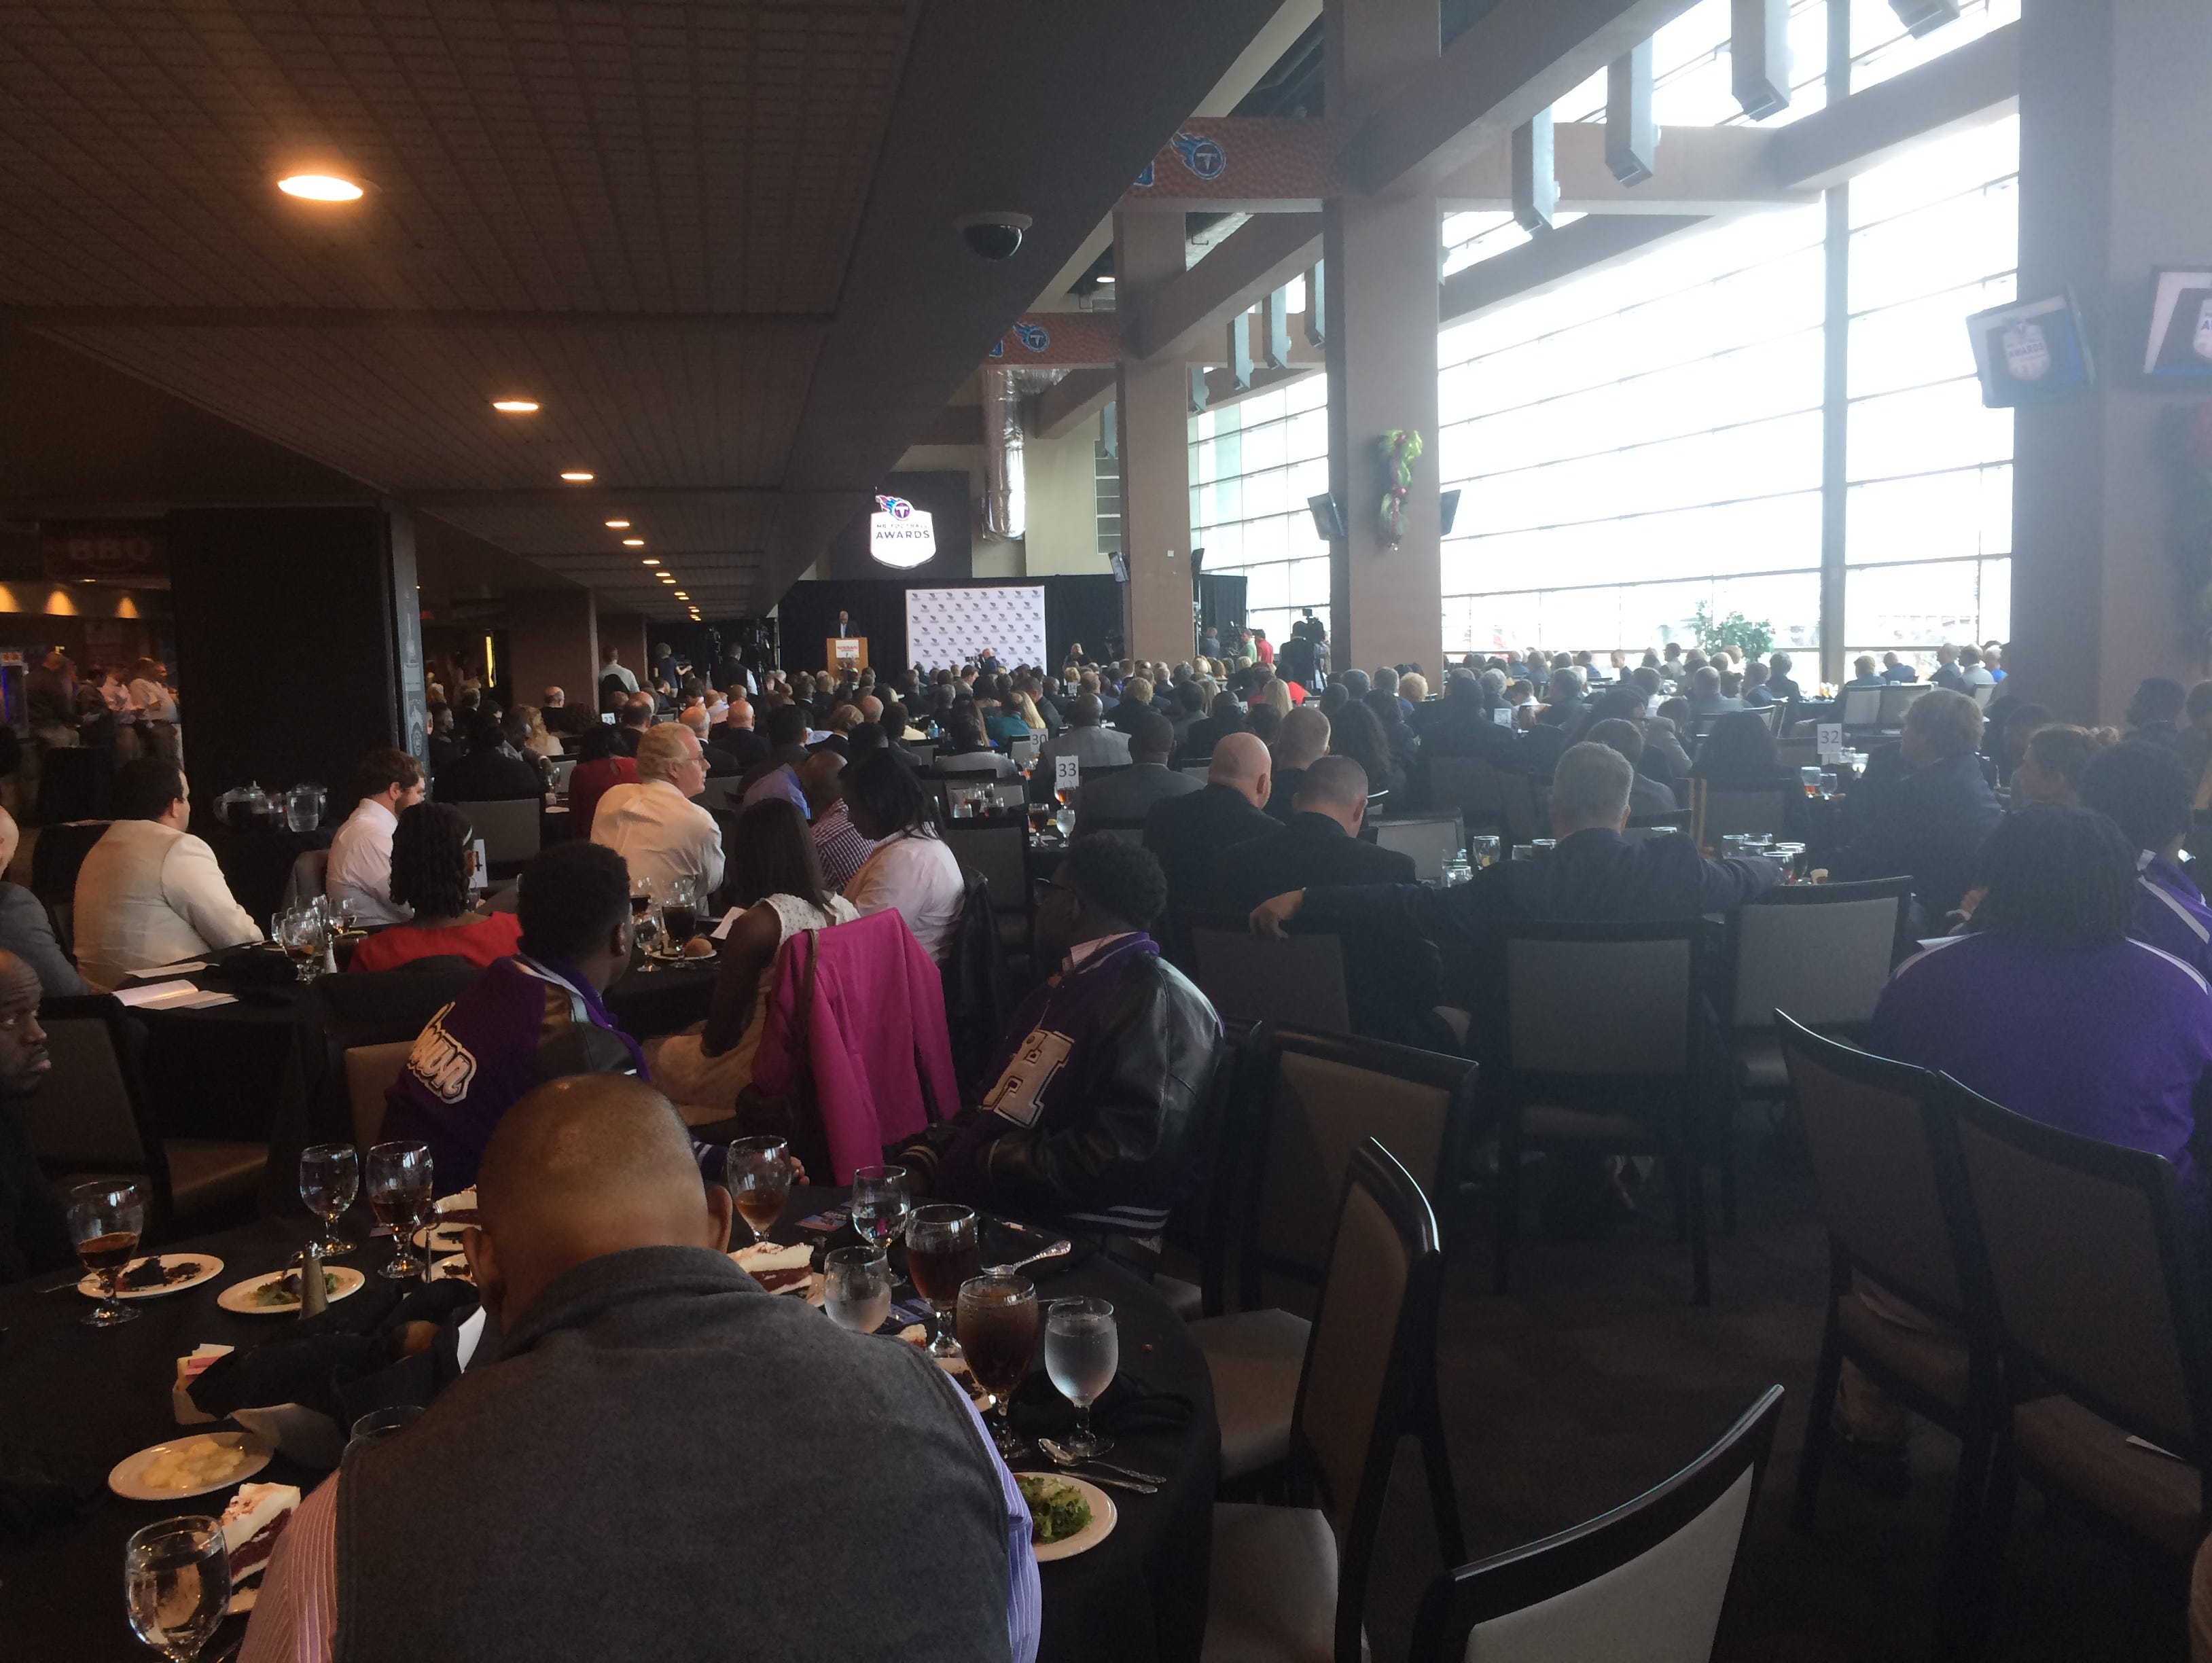 A crowd of about 500 gathered at Nissan Stadium where the Tennessee Titans play in Nashville for the Mr. Football awards ceremony.